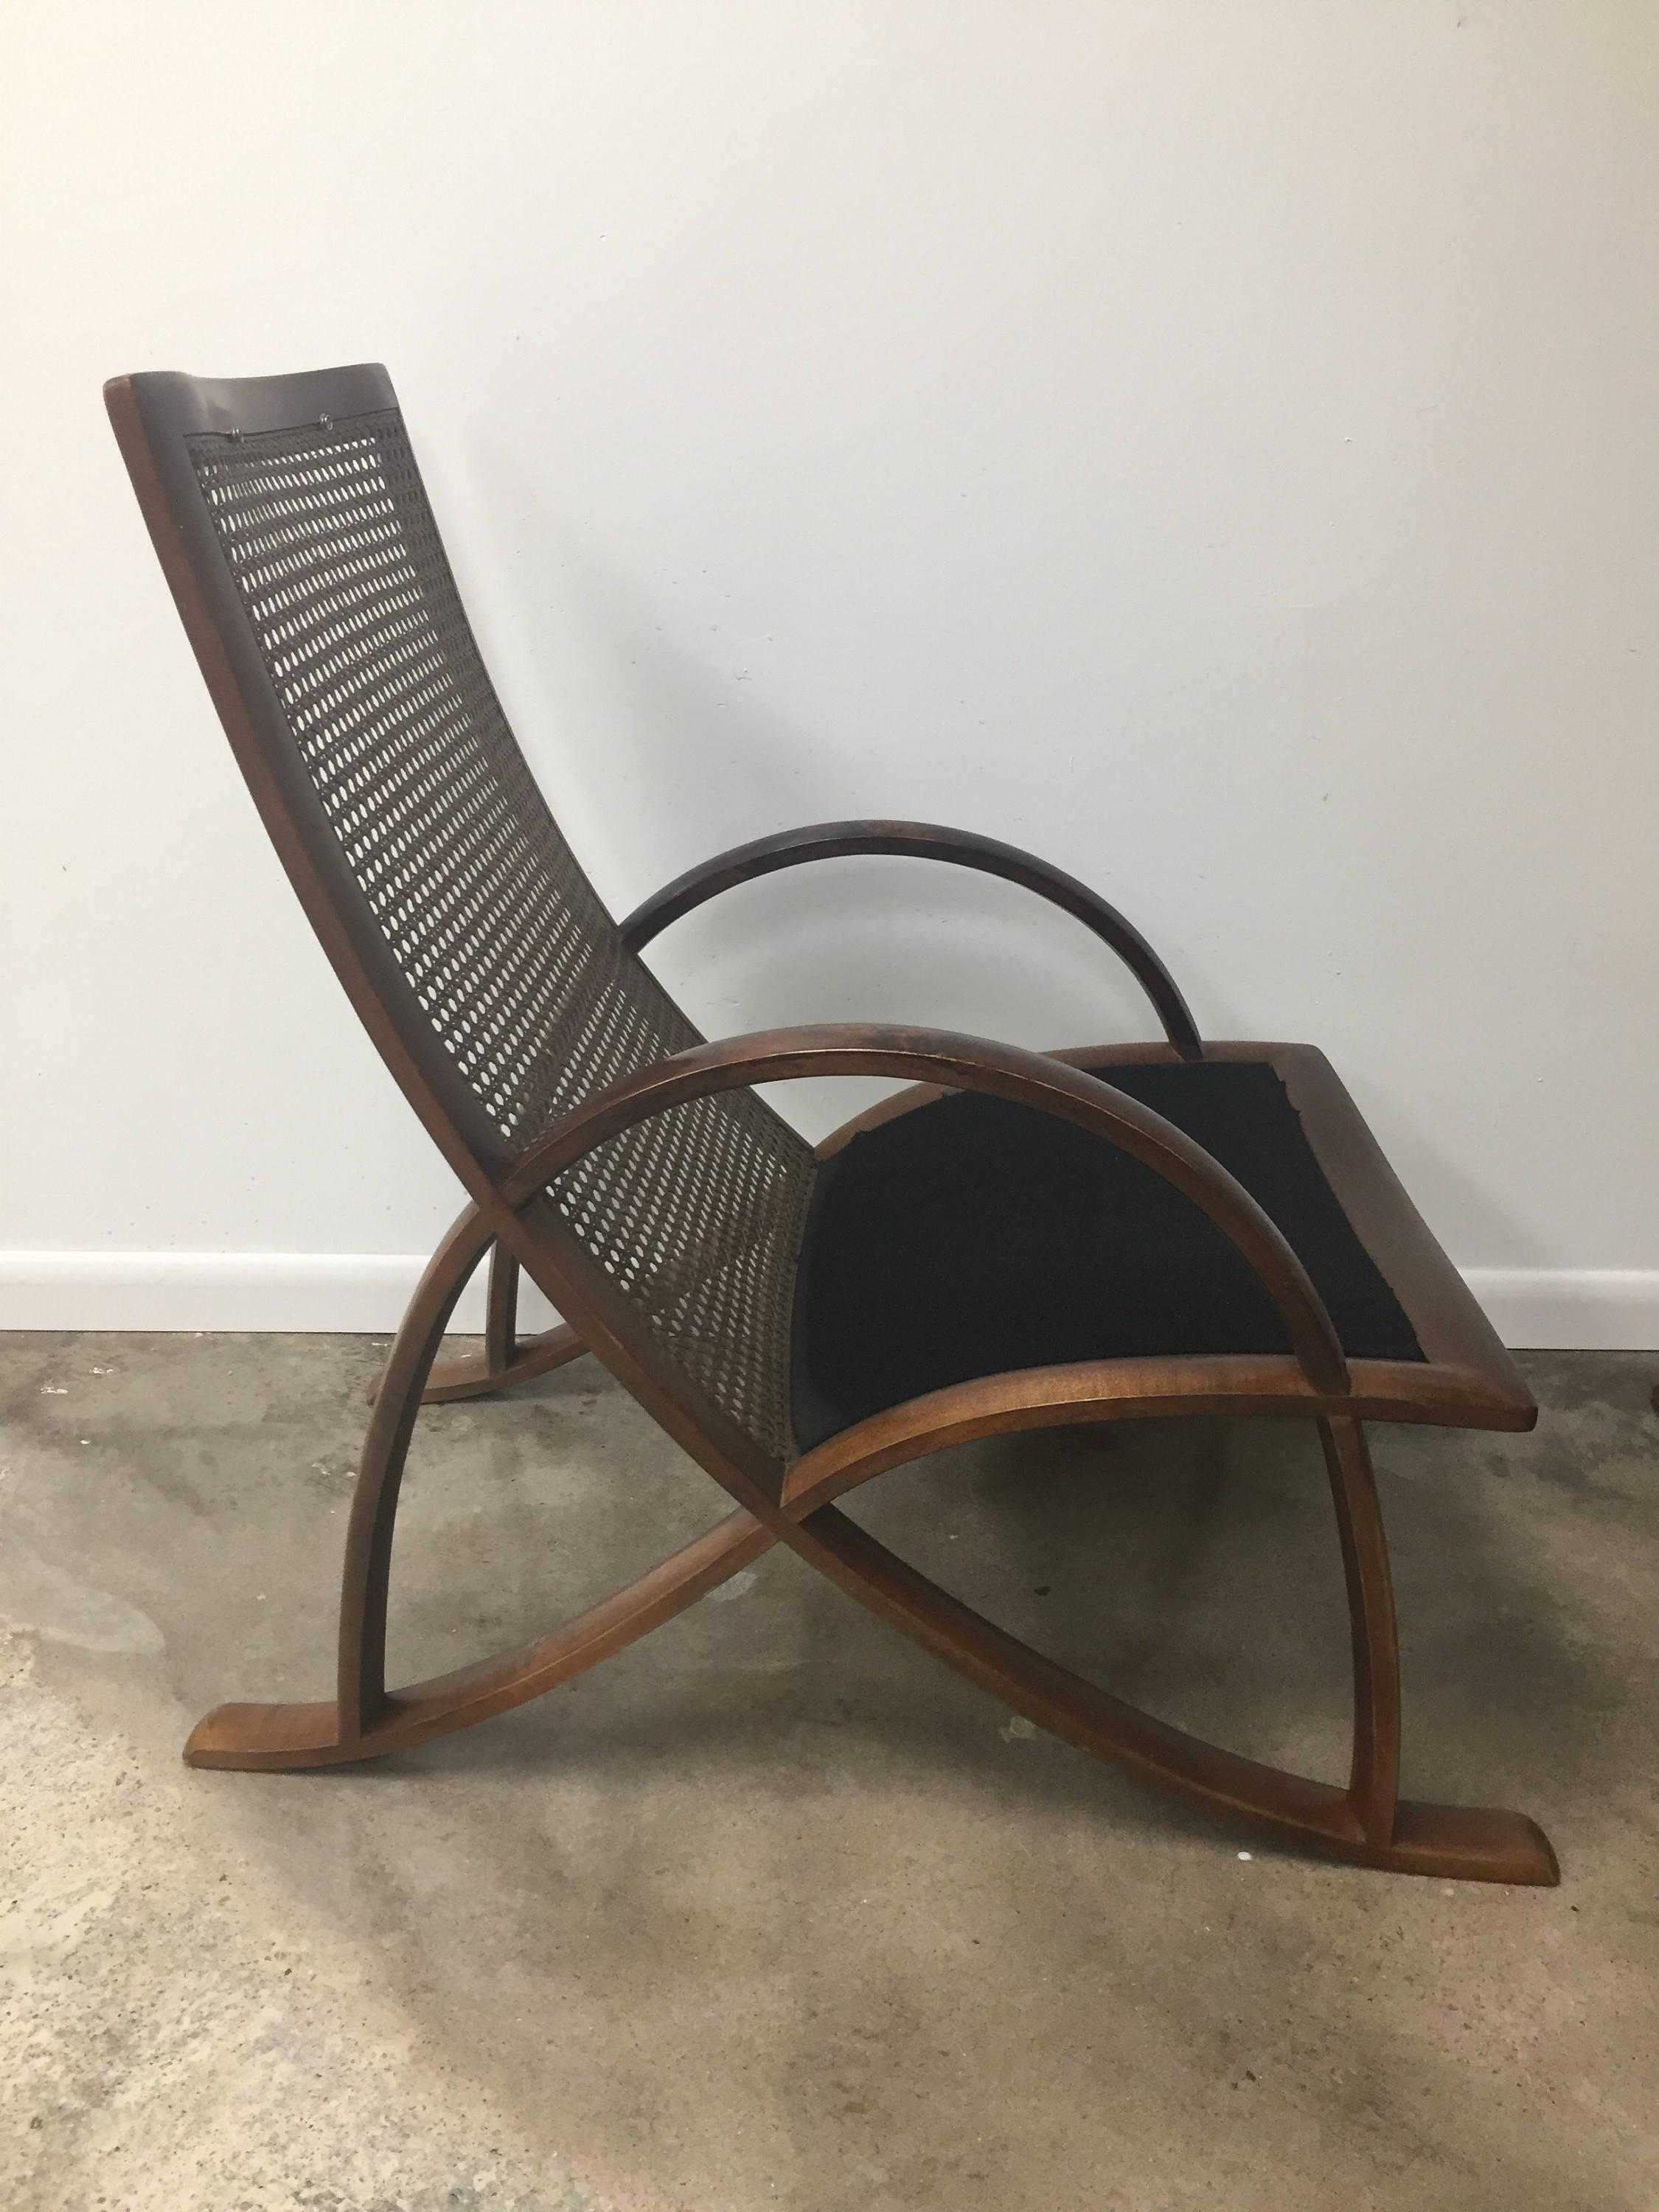 Pair Of Modern Bentwood And Cane Lounge Chairs And Ottoman By WK Mobel Of  Germany Frame